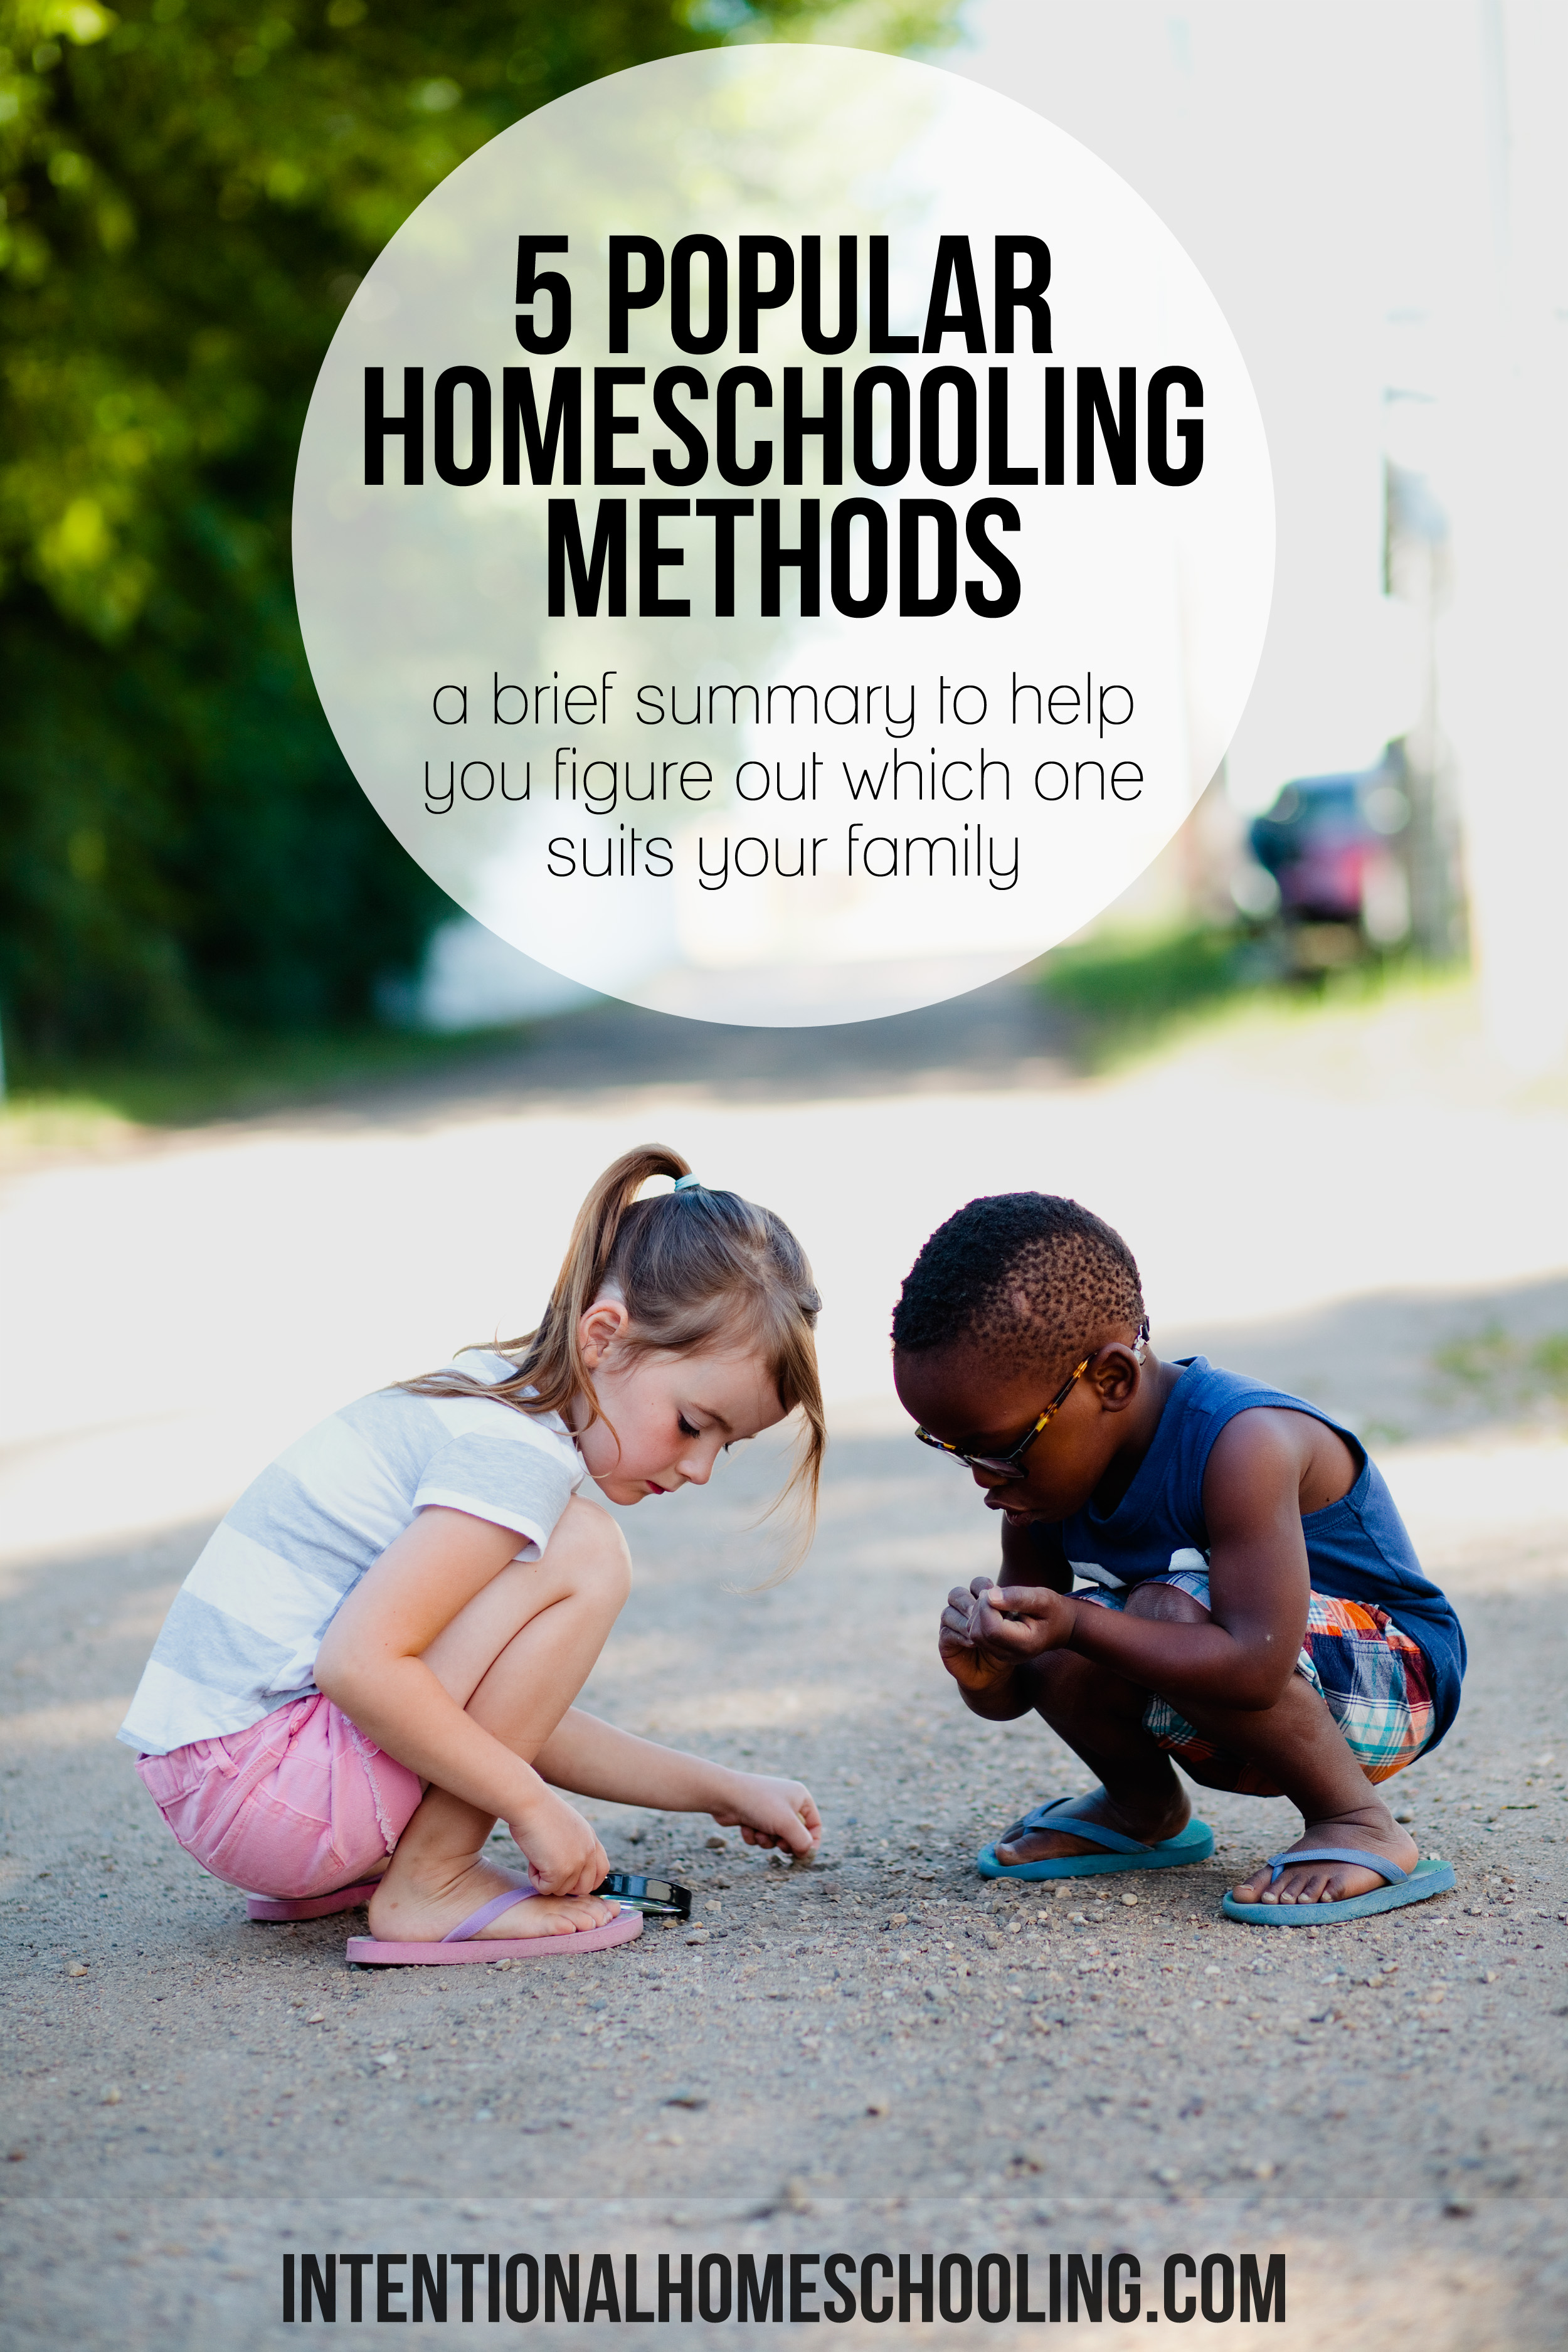 A quick summary of 5 of the most popular homeschooling methods to help you decide which one might be best for your family.